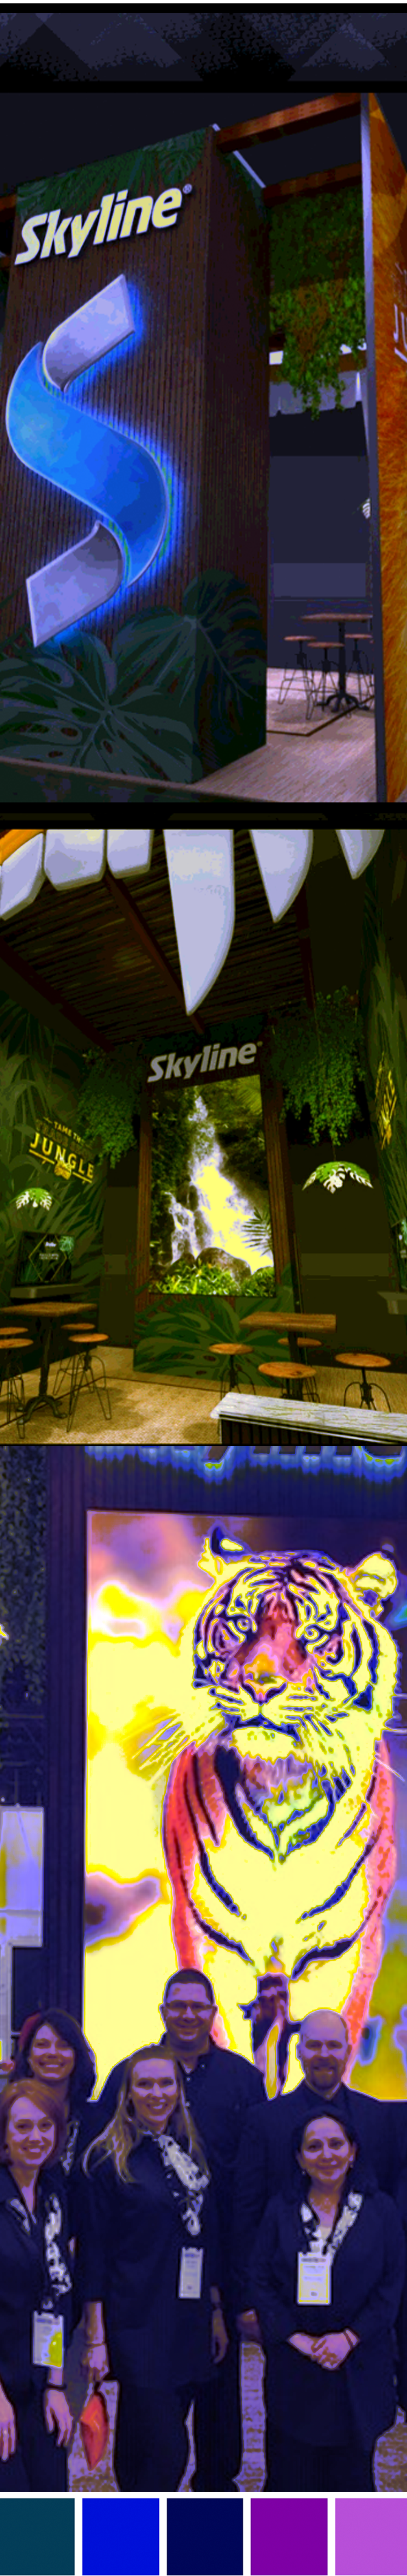 booth design to build awareness with exotic